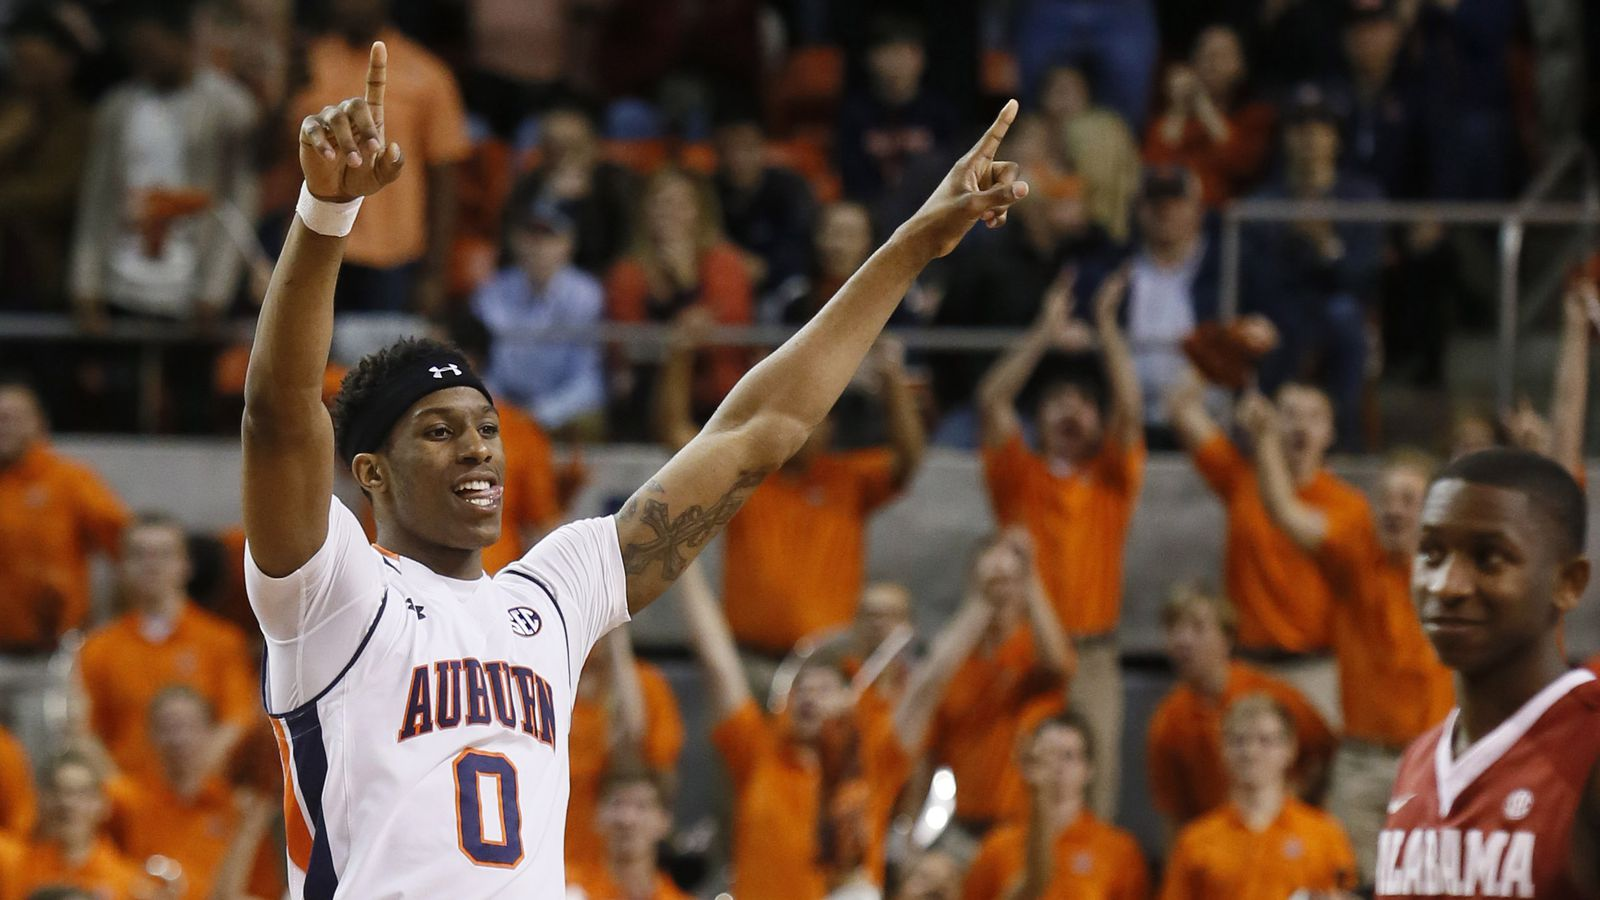 Get the latest news and information for the Auburn Tigers 2018 season schedule scores stats and highlights Find out the latest on your favorite NCAAB teams on